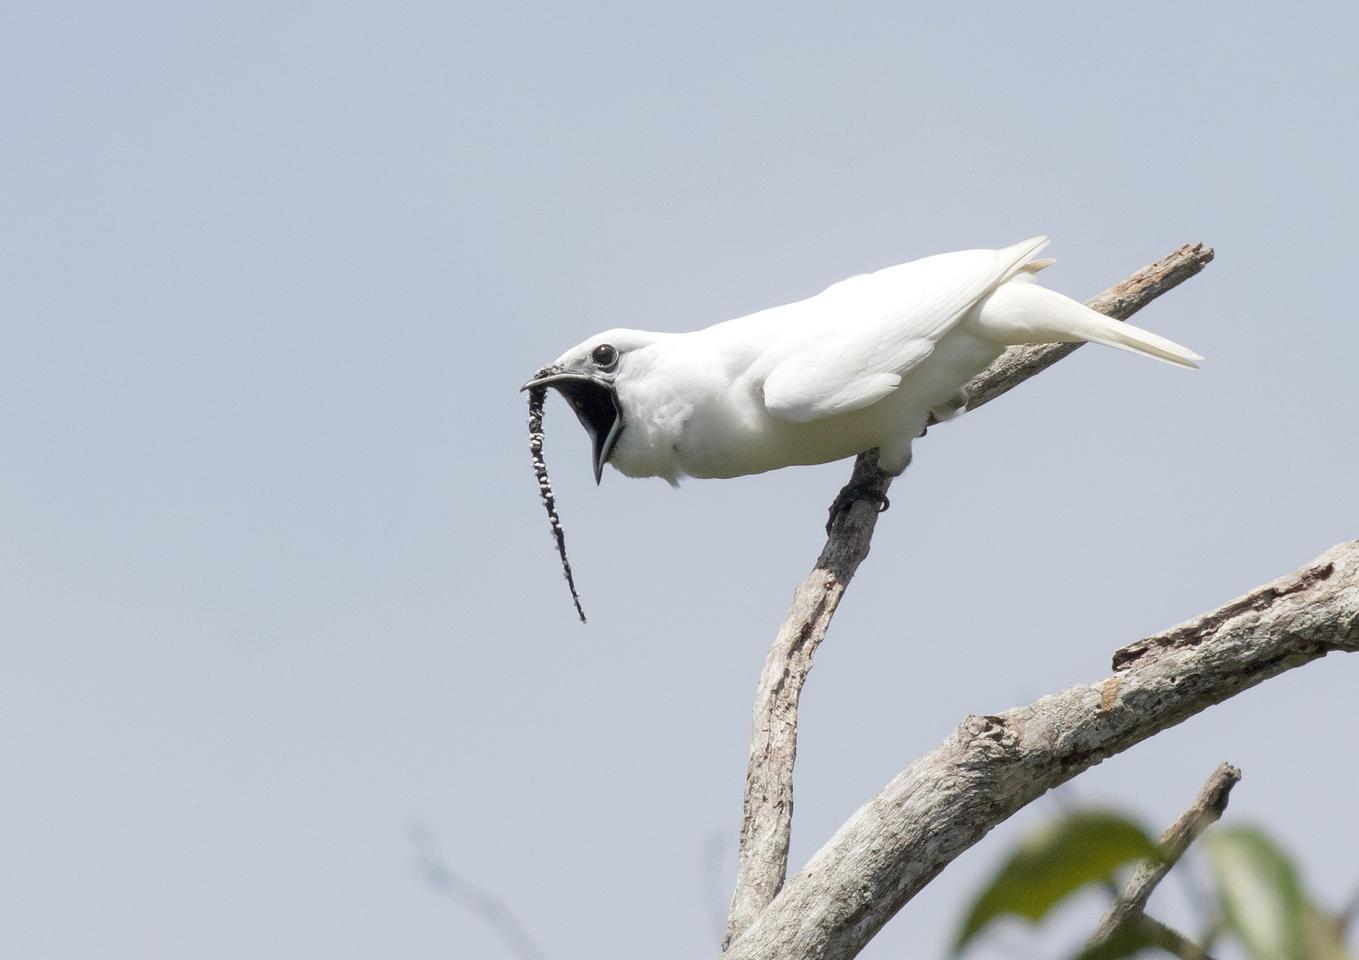 The male white bellbird is known to blast its incredibly loud song at females to impress them